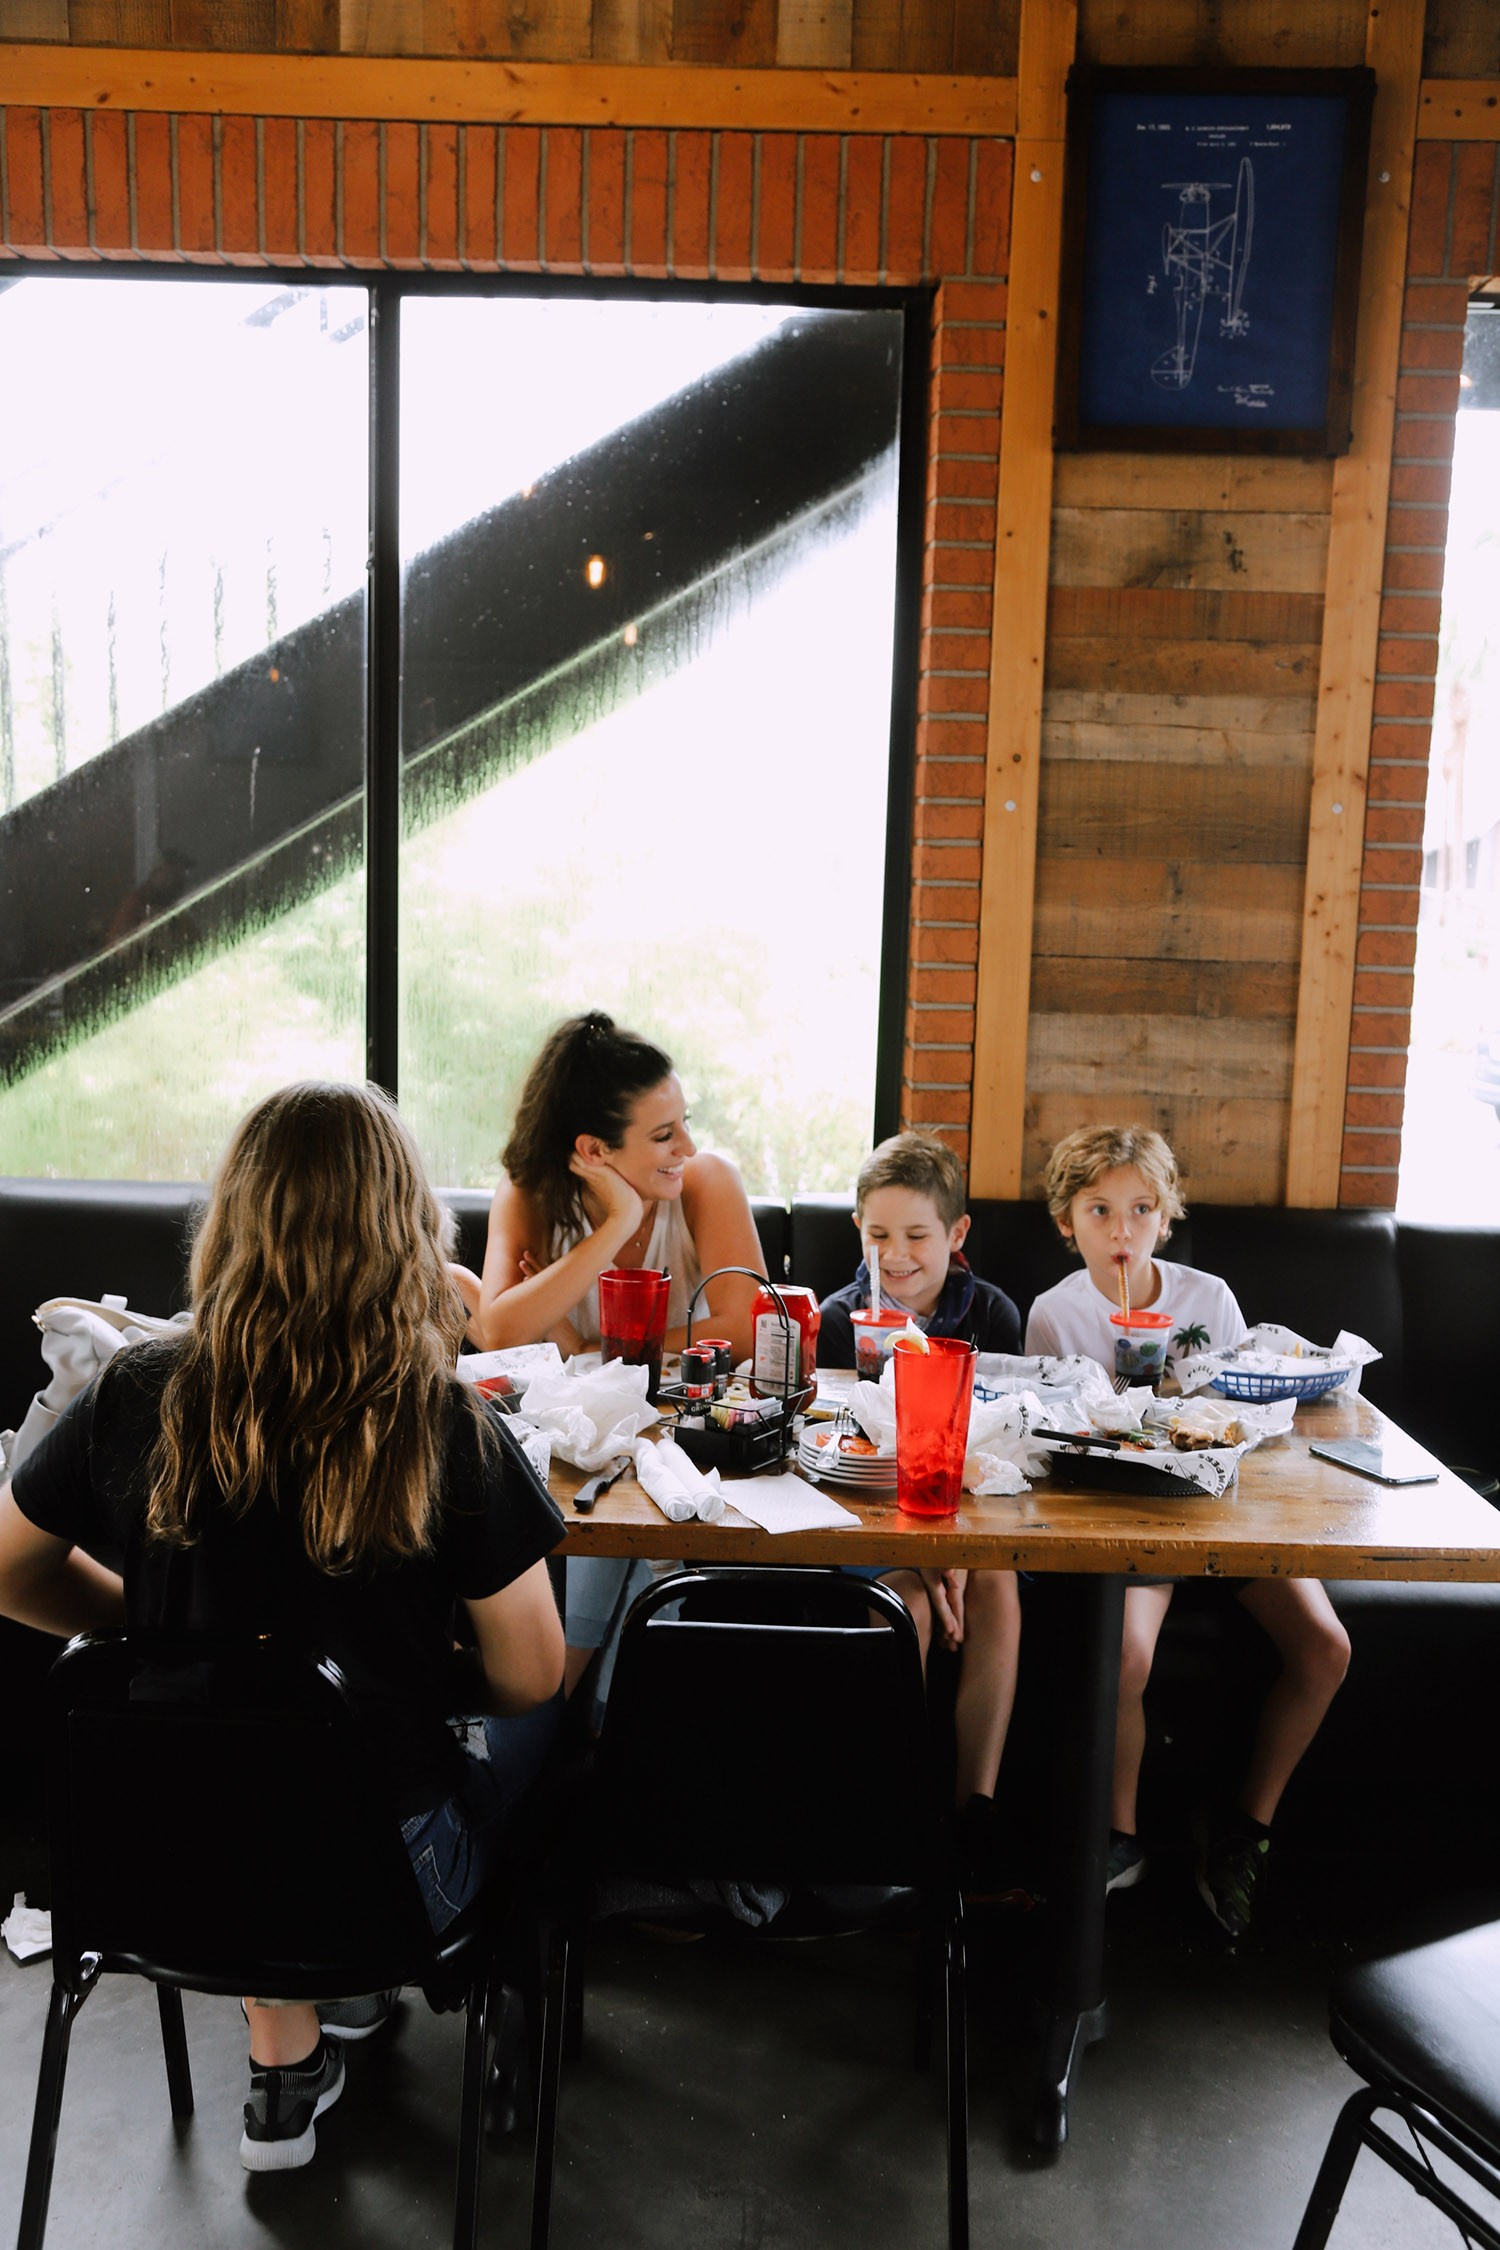 Spectacular Lake County, Florida Staycation Ideas for the Family! | Lake County by popular Florida blog, Fresh Mommy Blog: image of a family eating food at Puddle Jumpers.